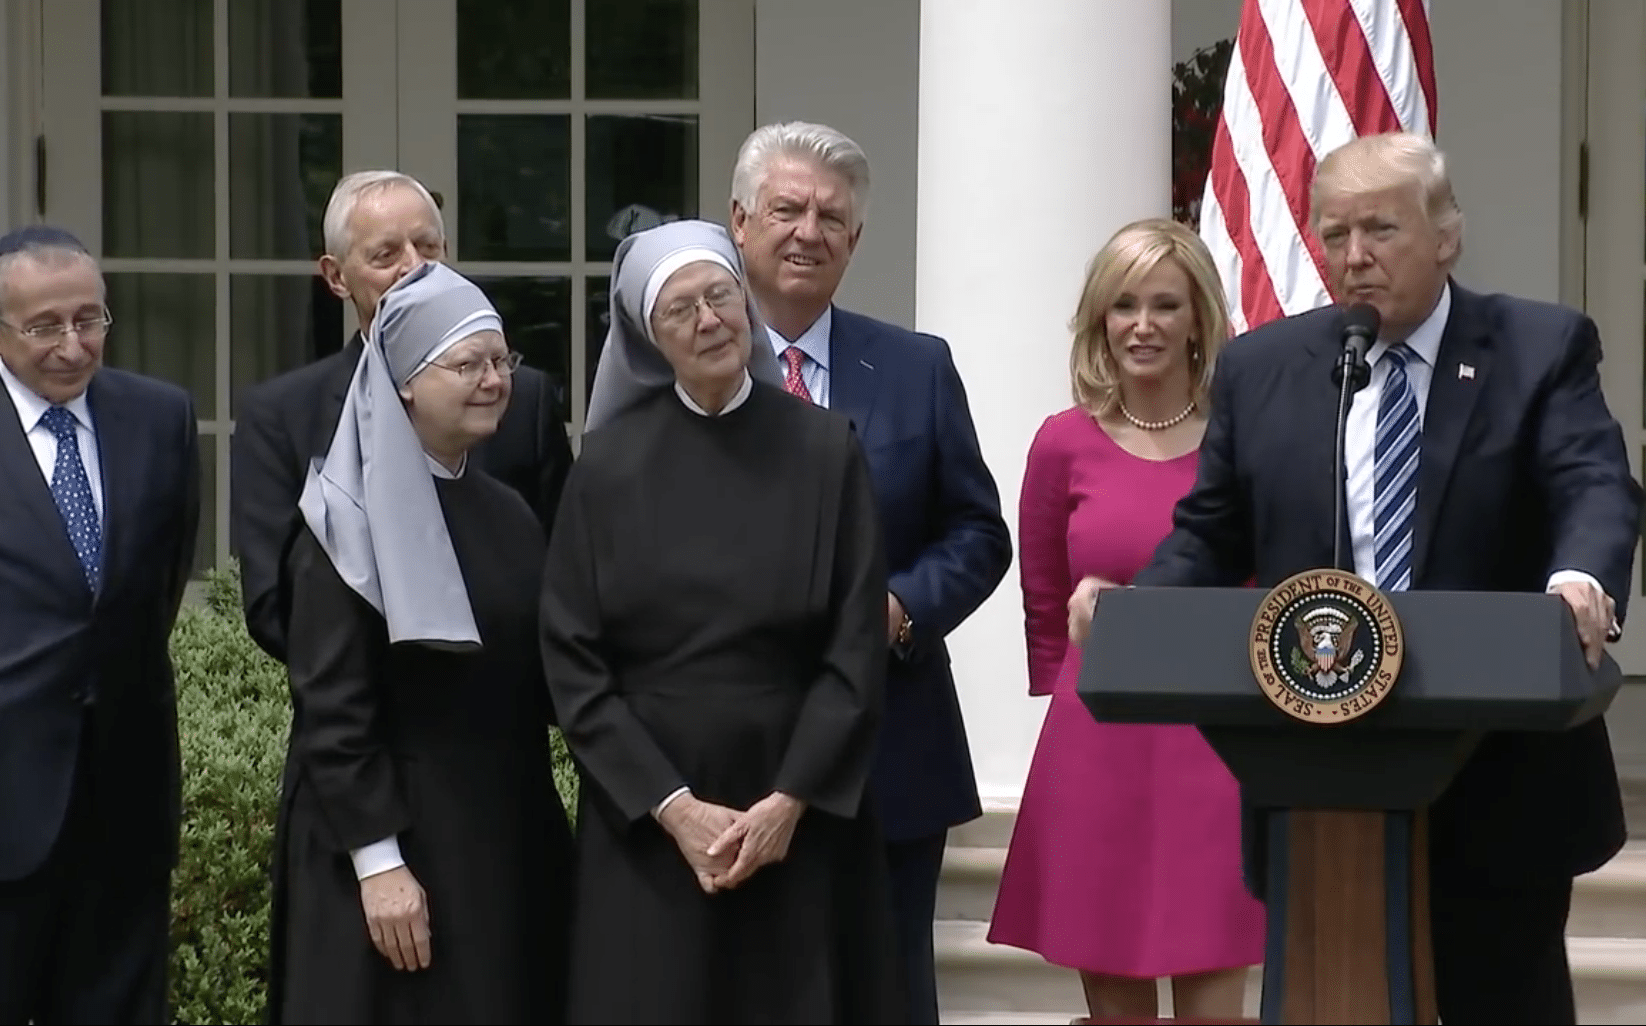 White House Moves to Roll Back Contraceptive Requirement for Religious Employers